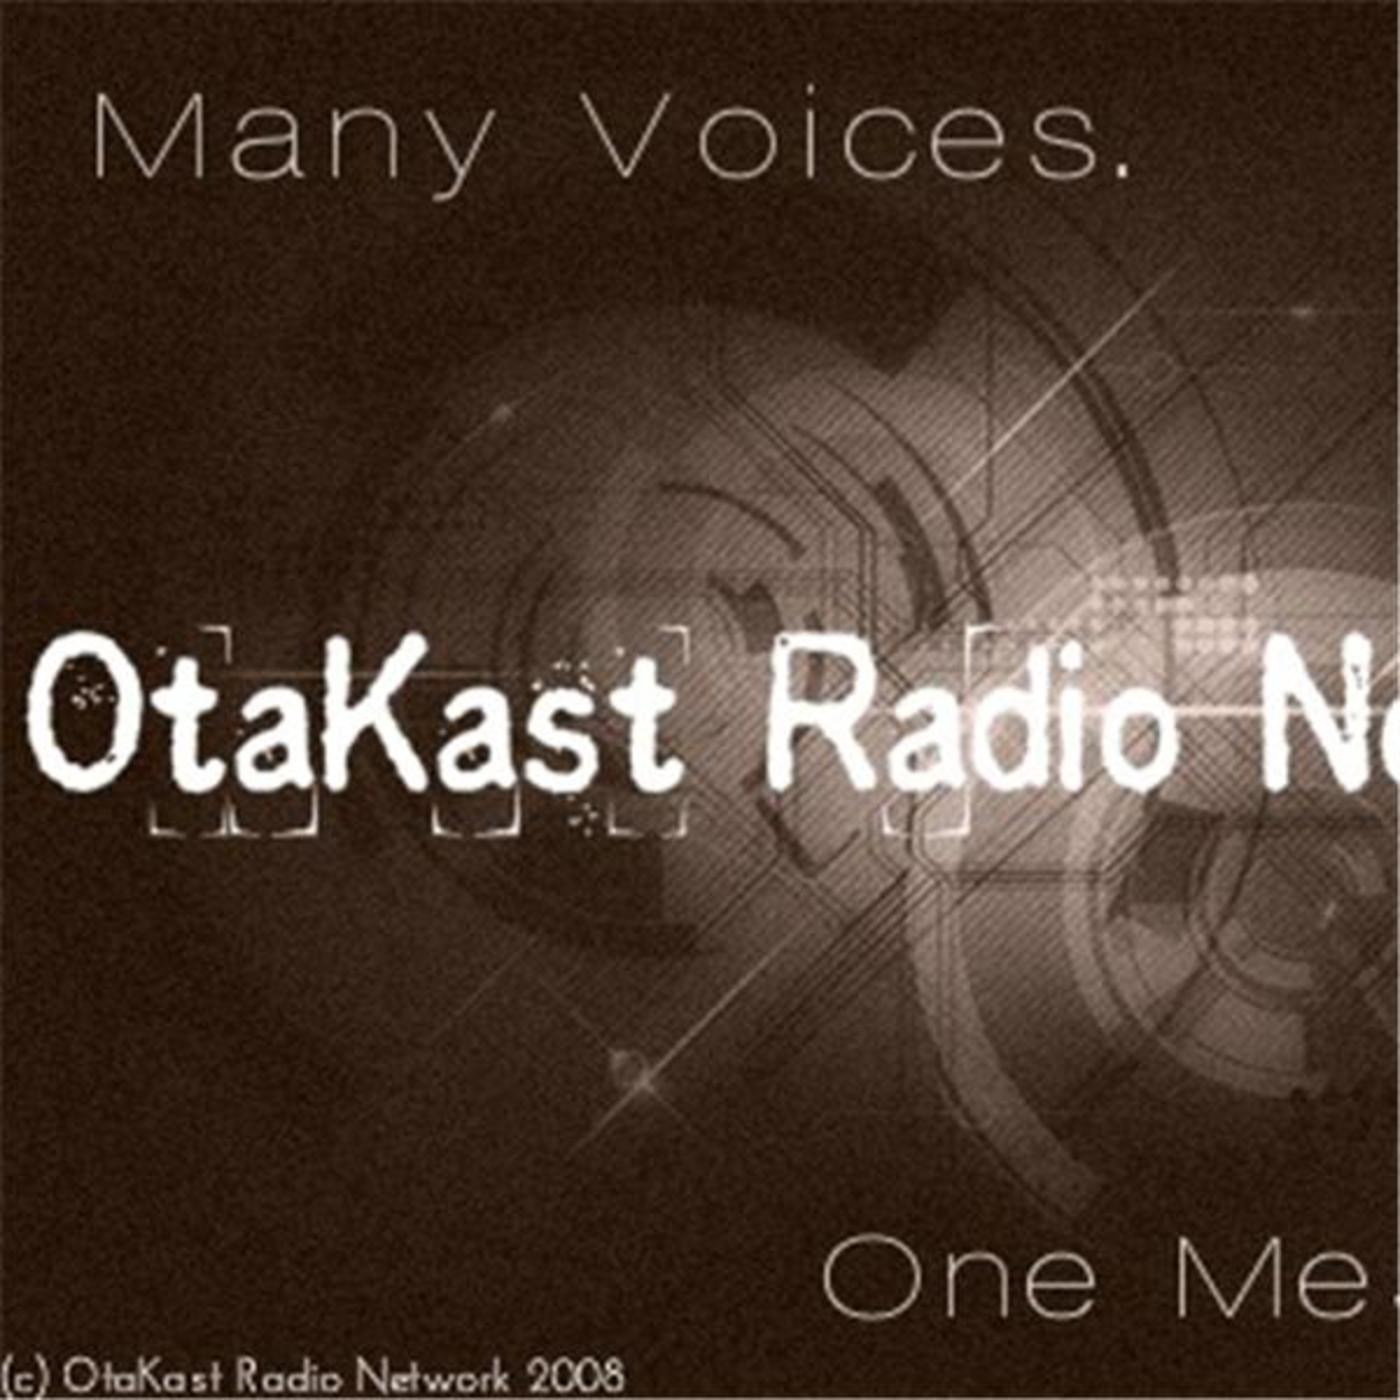 OtaKast Radio Network